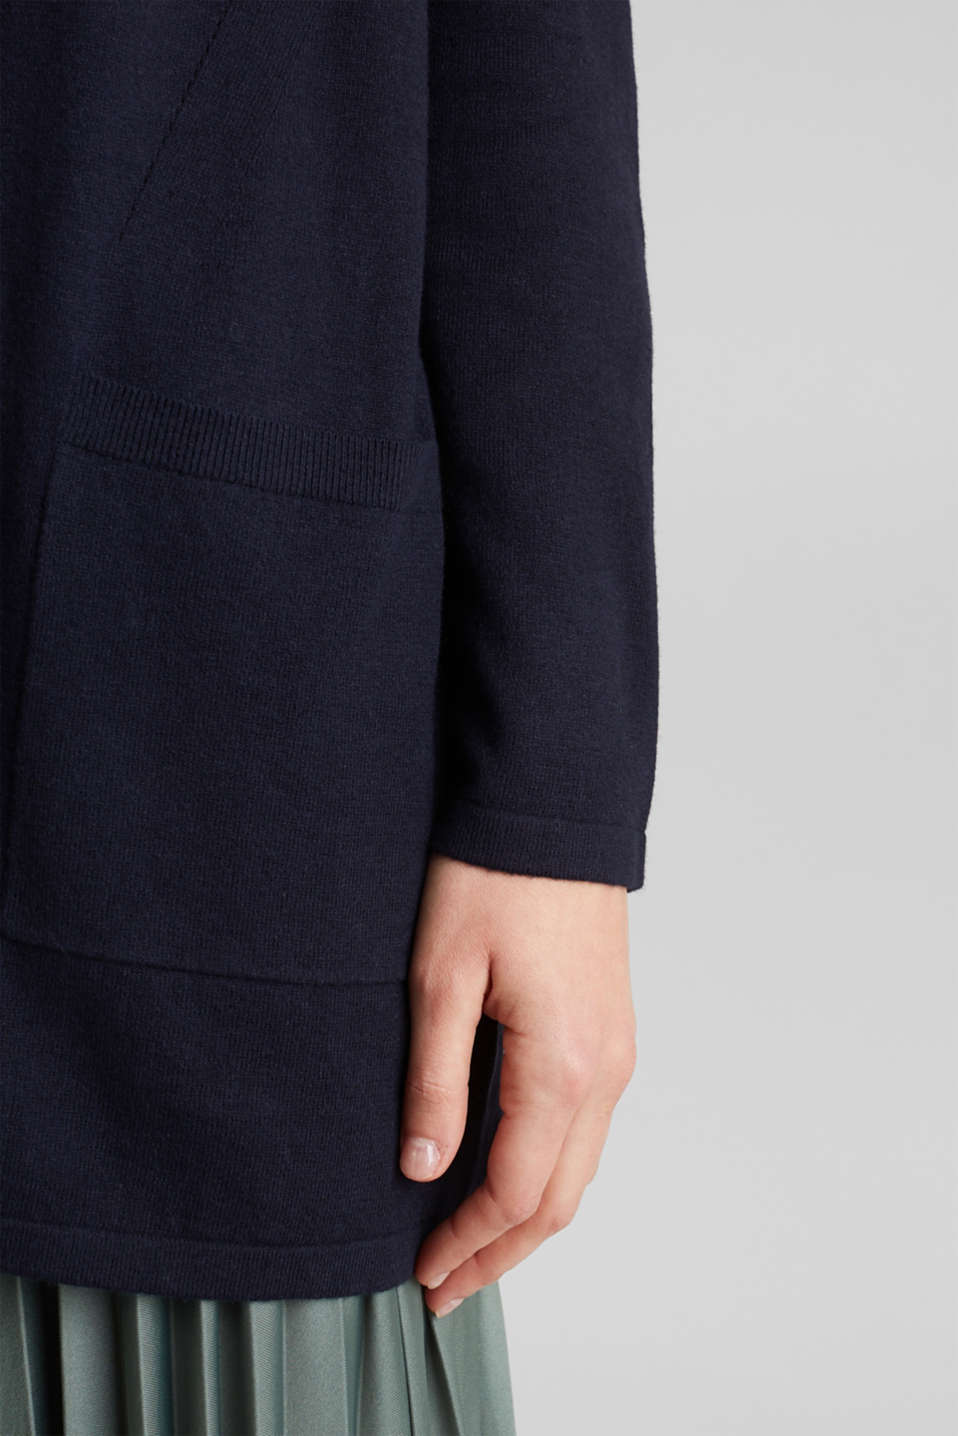 With linen: open cardigan with open-work pattern details, NAVY, detail image number 5